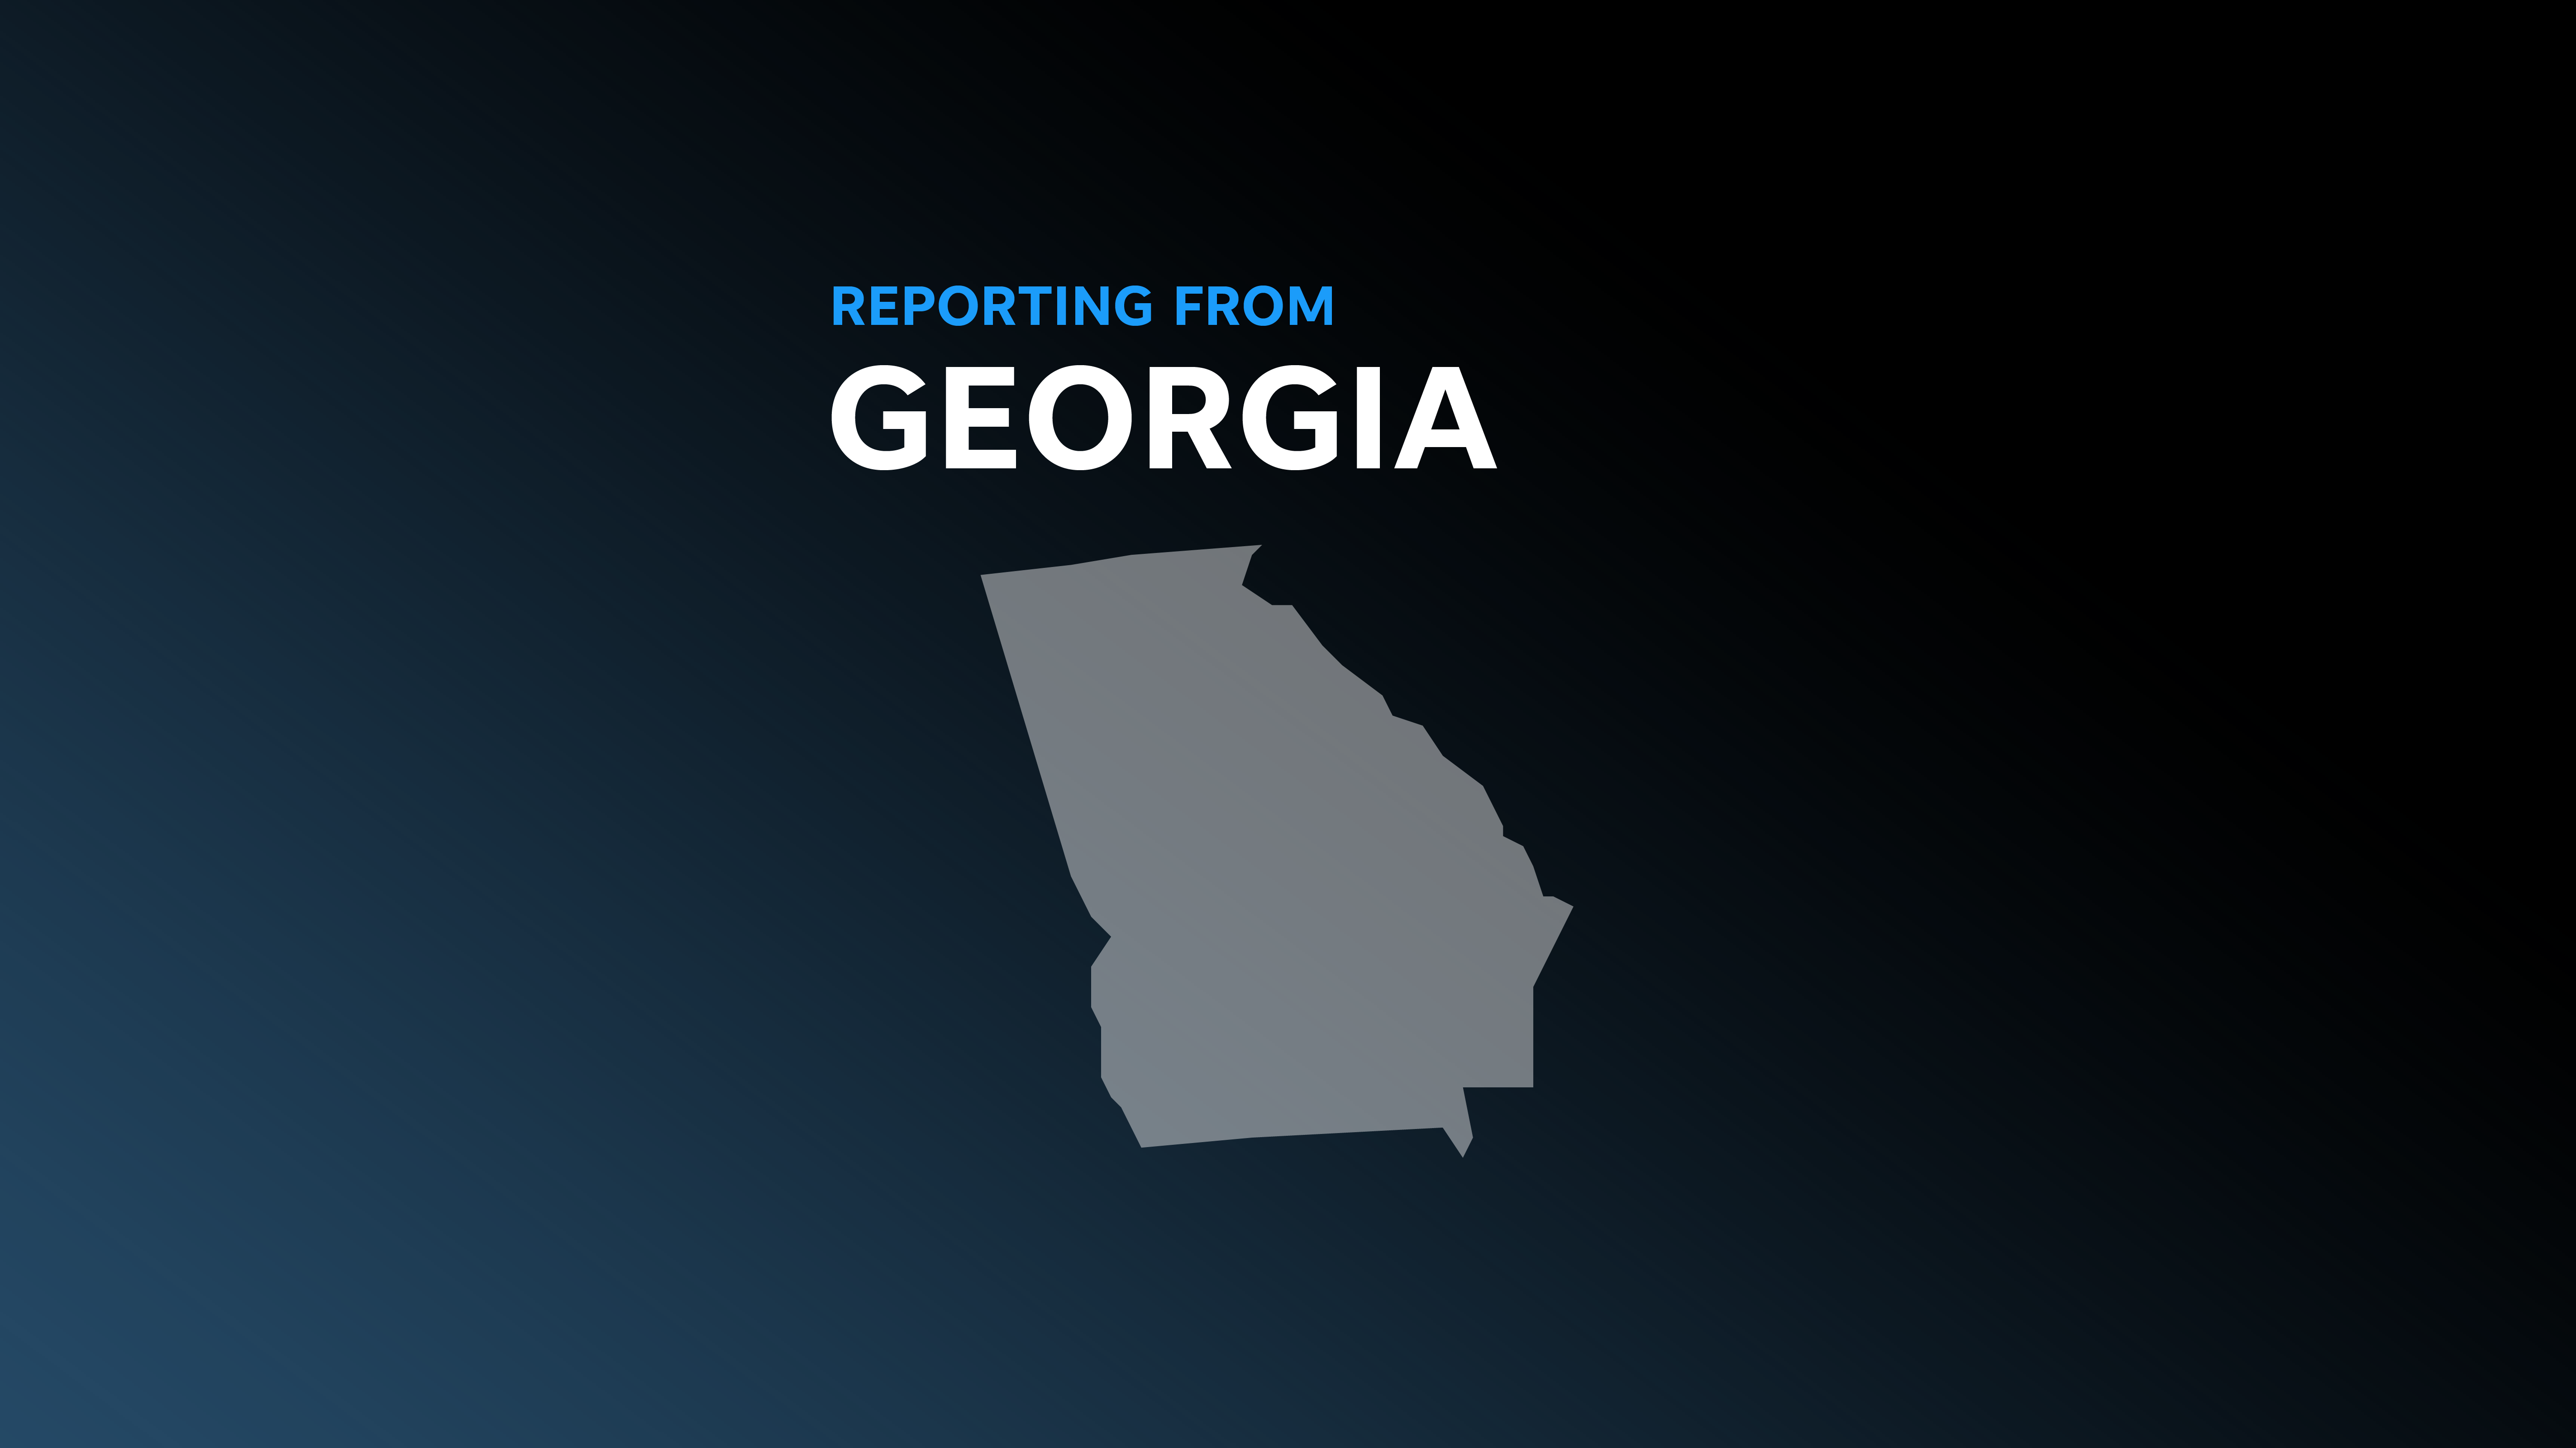 Georgia police officer fatally shot on first day with new department; search for suspect underway